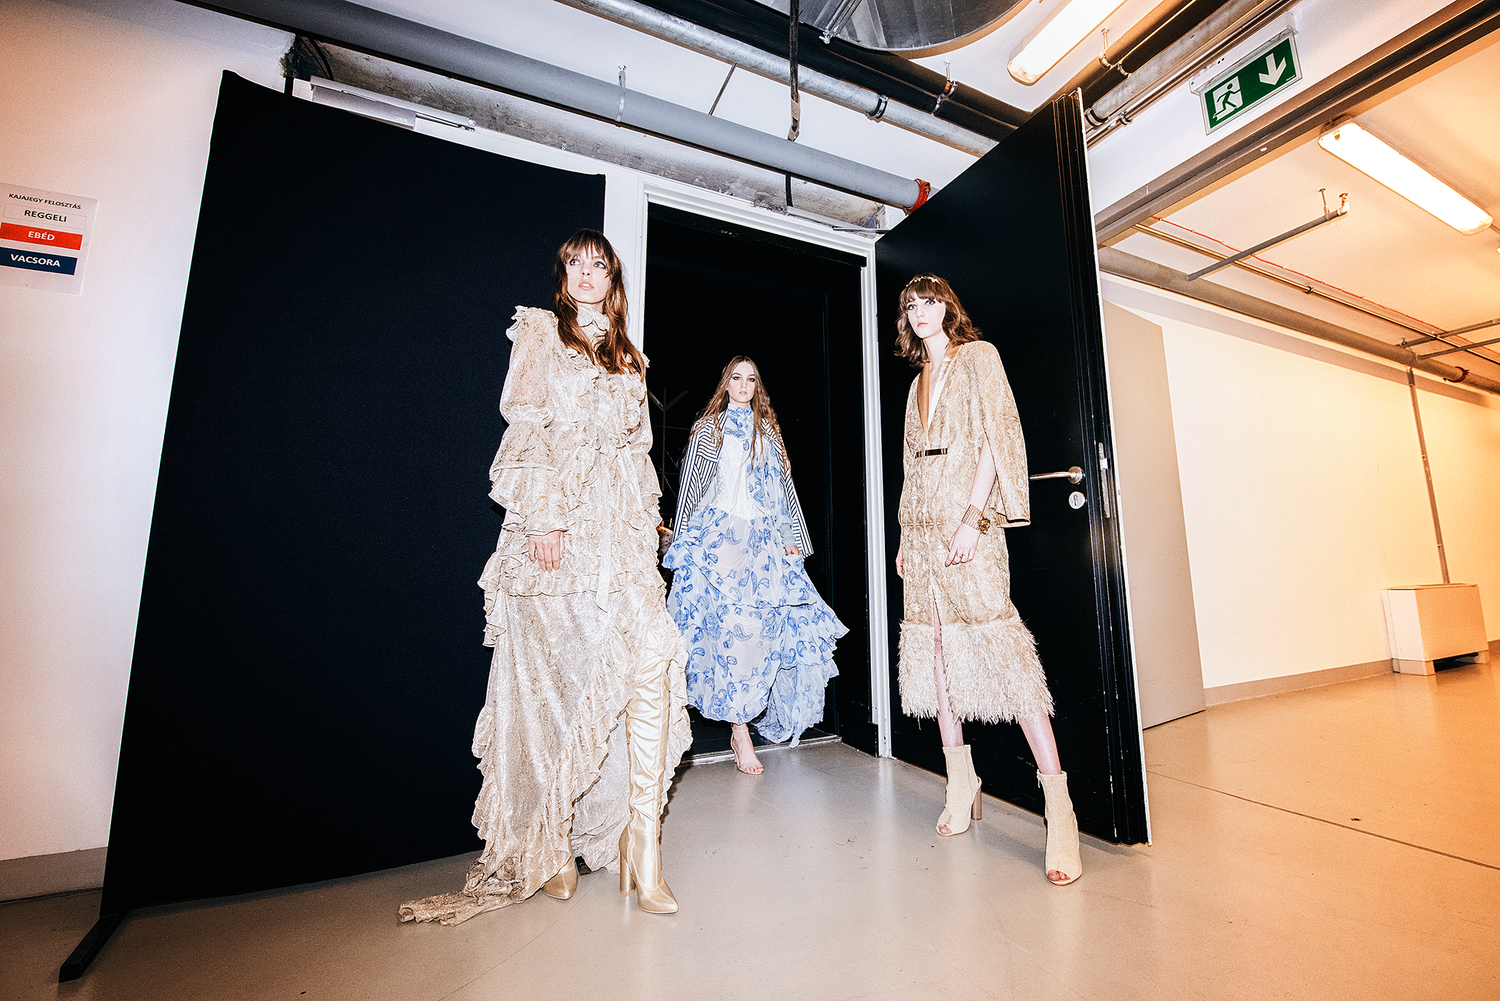 BCEFW 2018 / BACKSTAGE EDITORIAL - 1 by Csoboth Edina